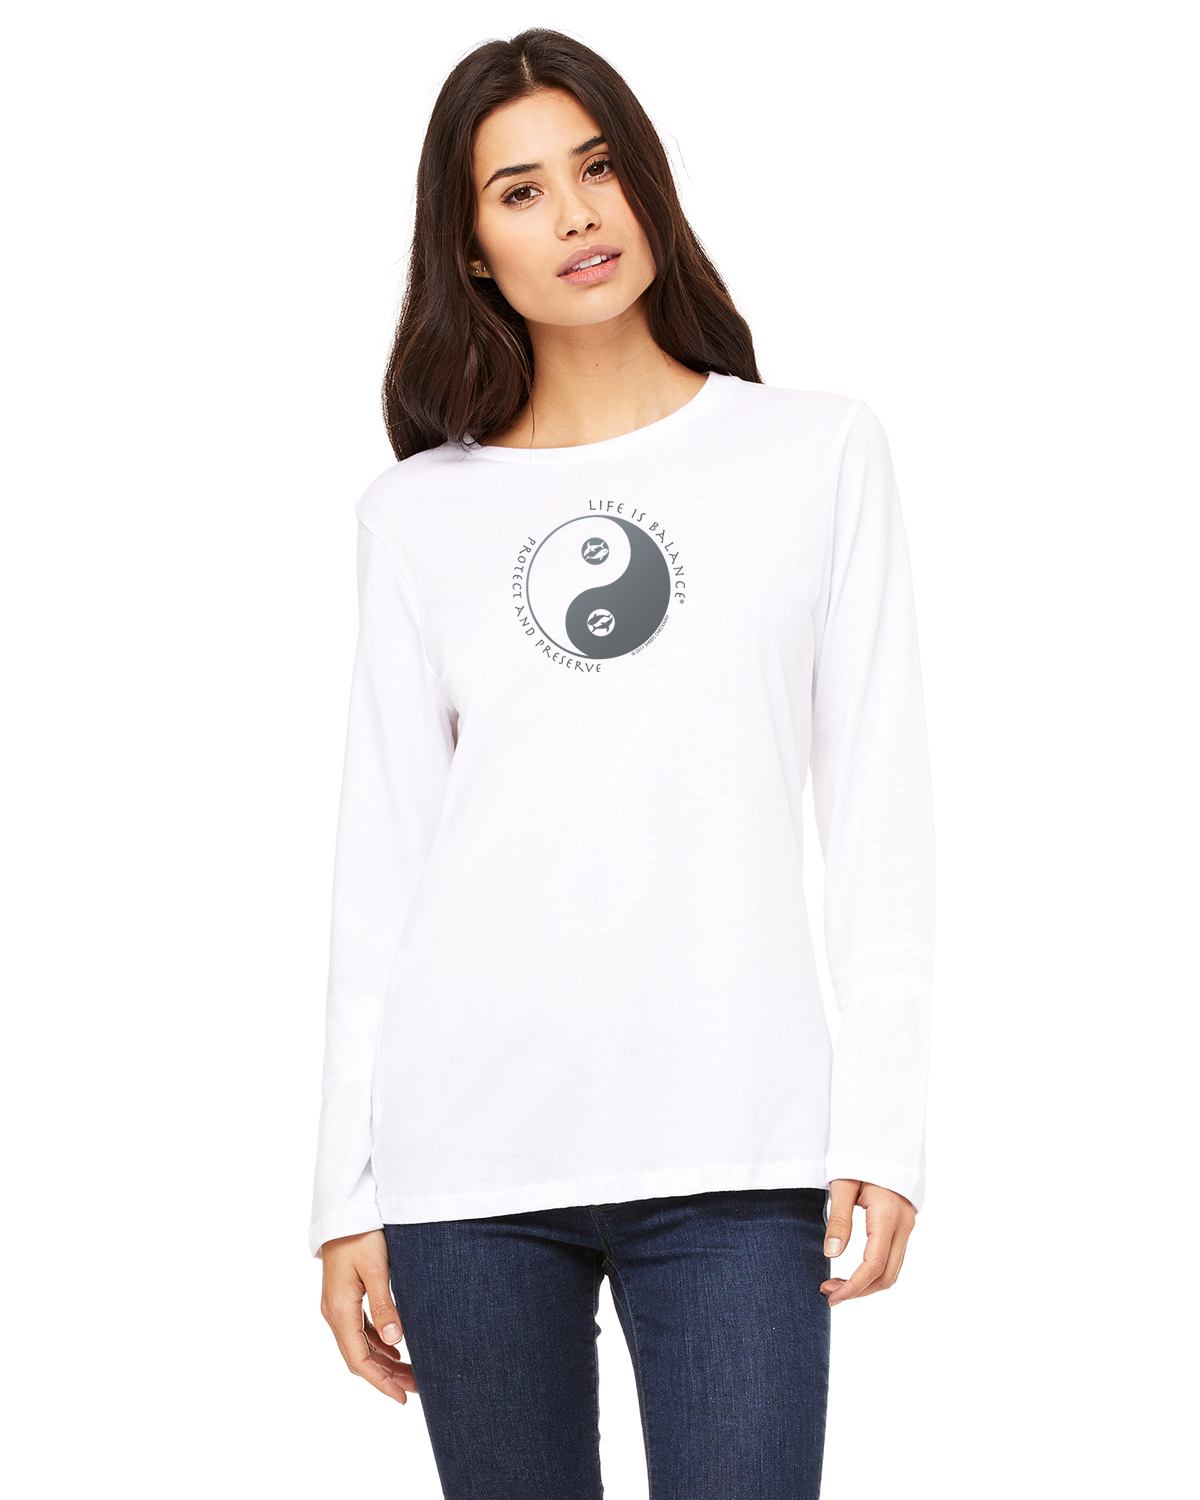 Women's long sleeve Ocean Conservation t-shirt (white)